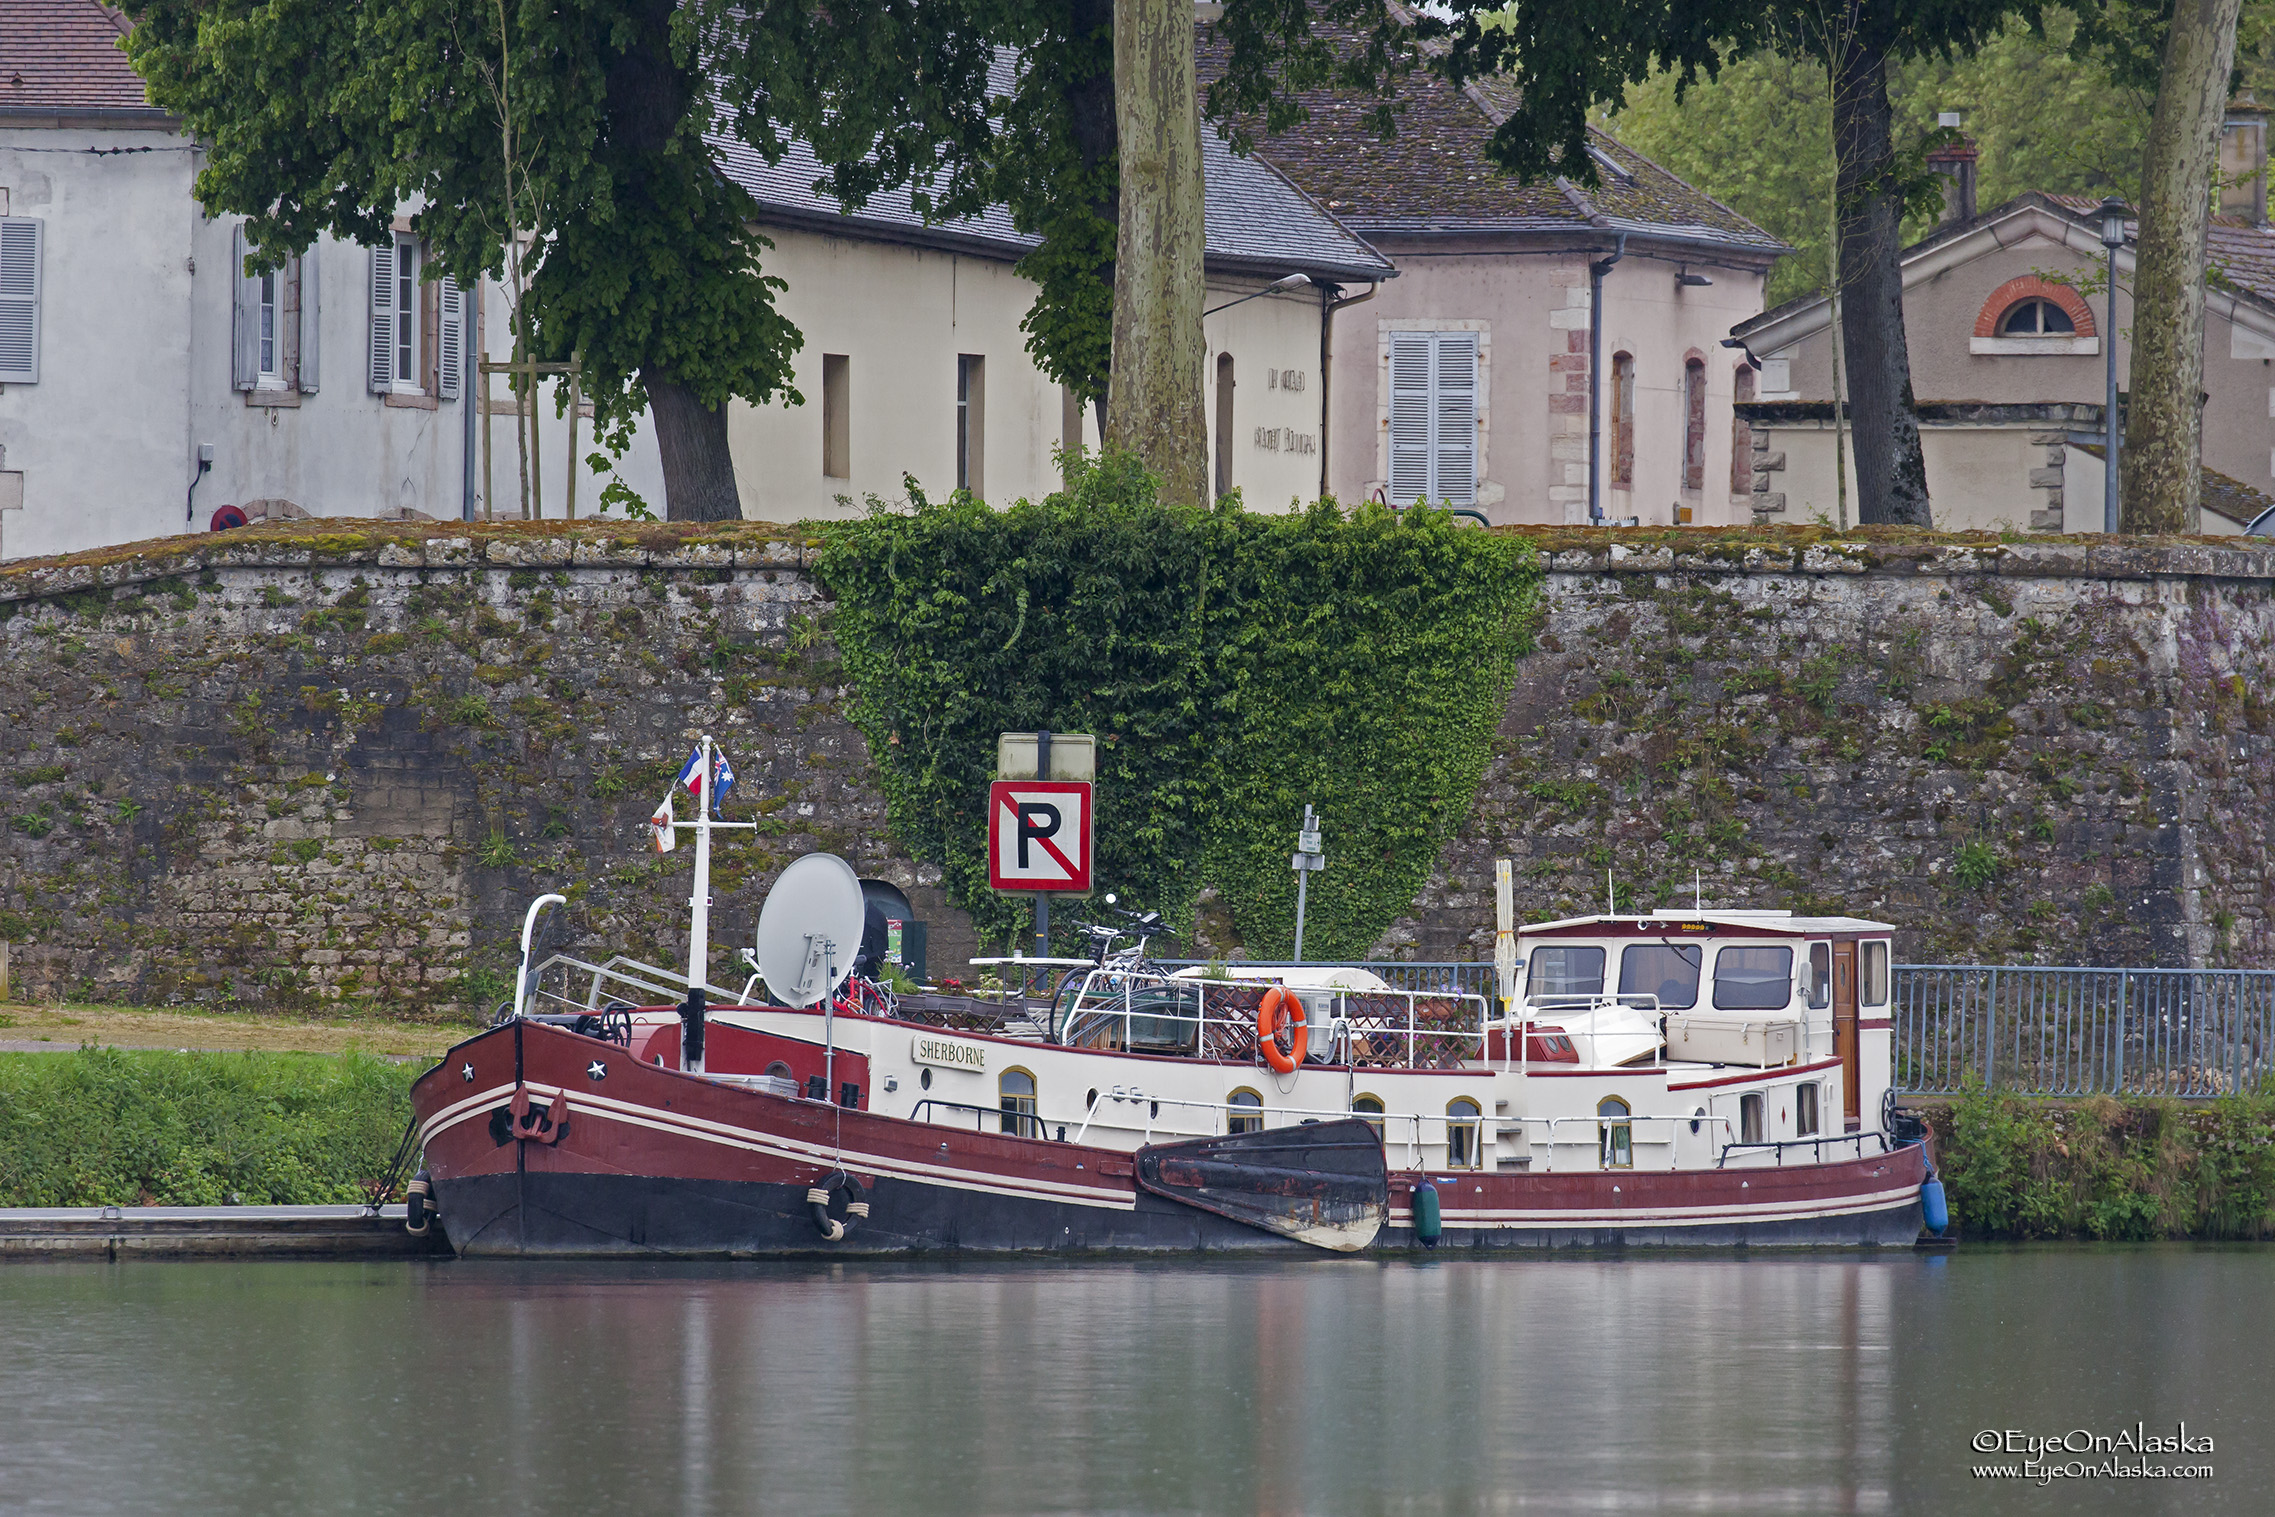 Cruising through the city of Auxonne. Lots of cool canal boats.